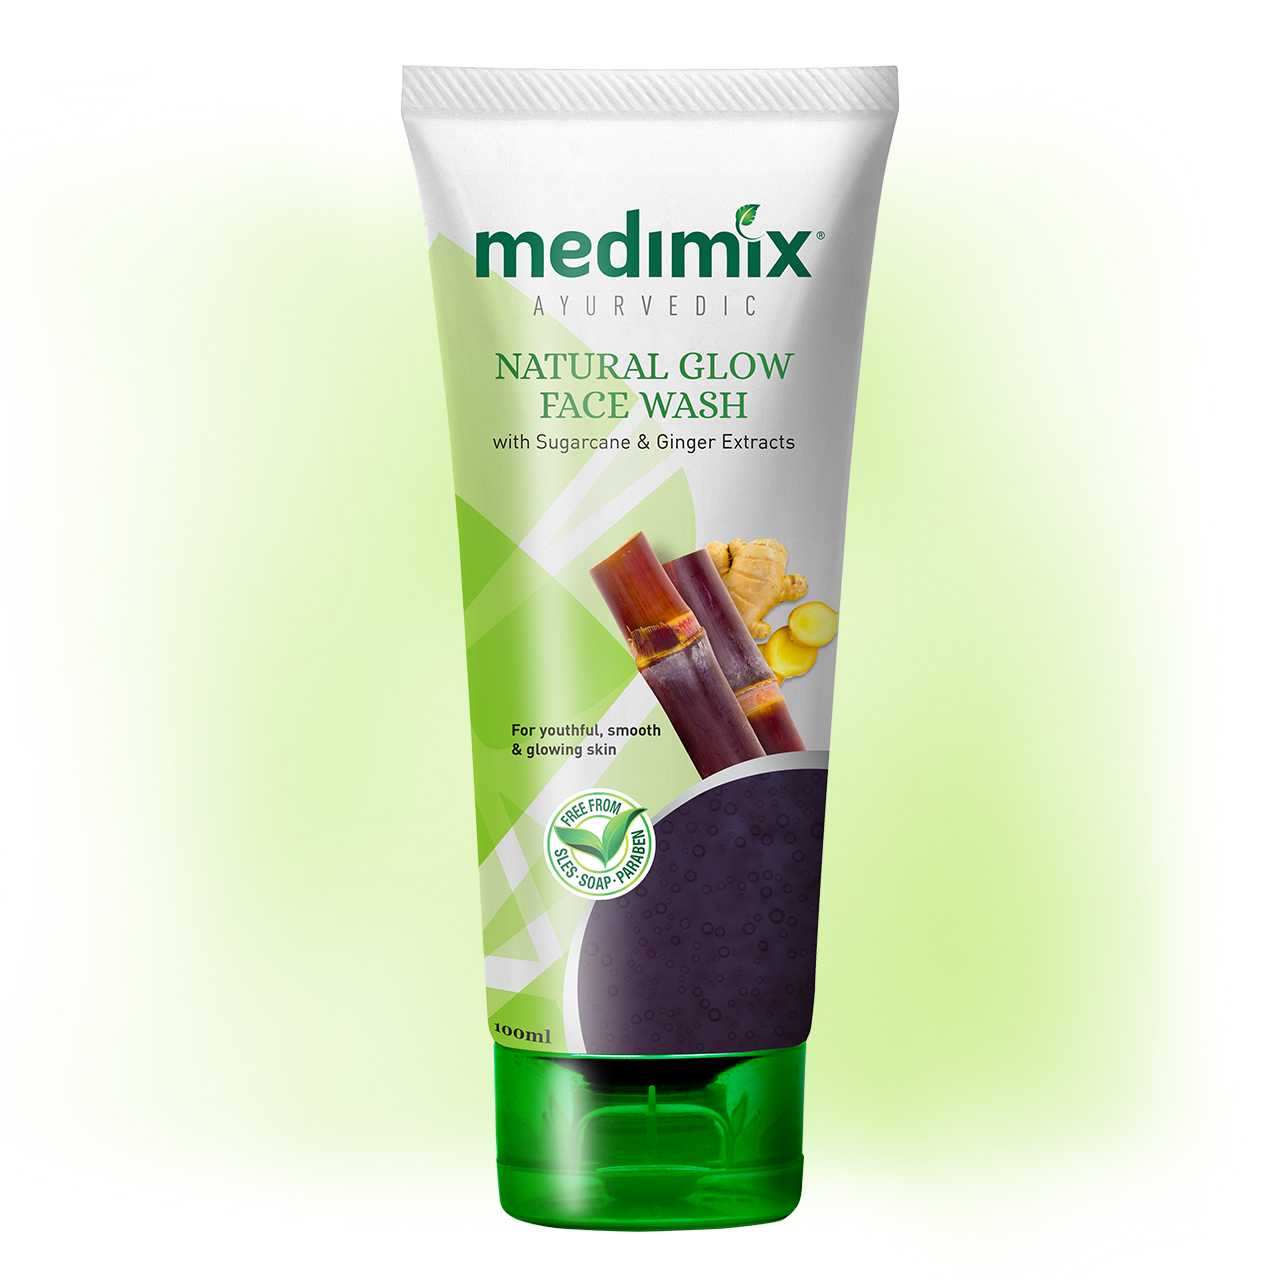 Medimix Natural Glow Face Wash